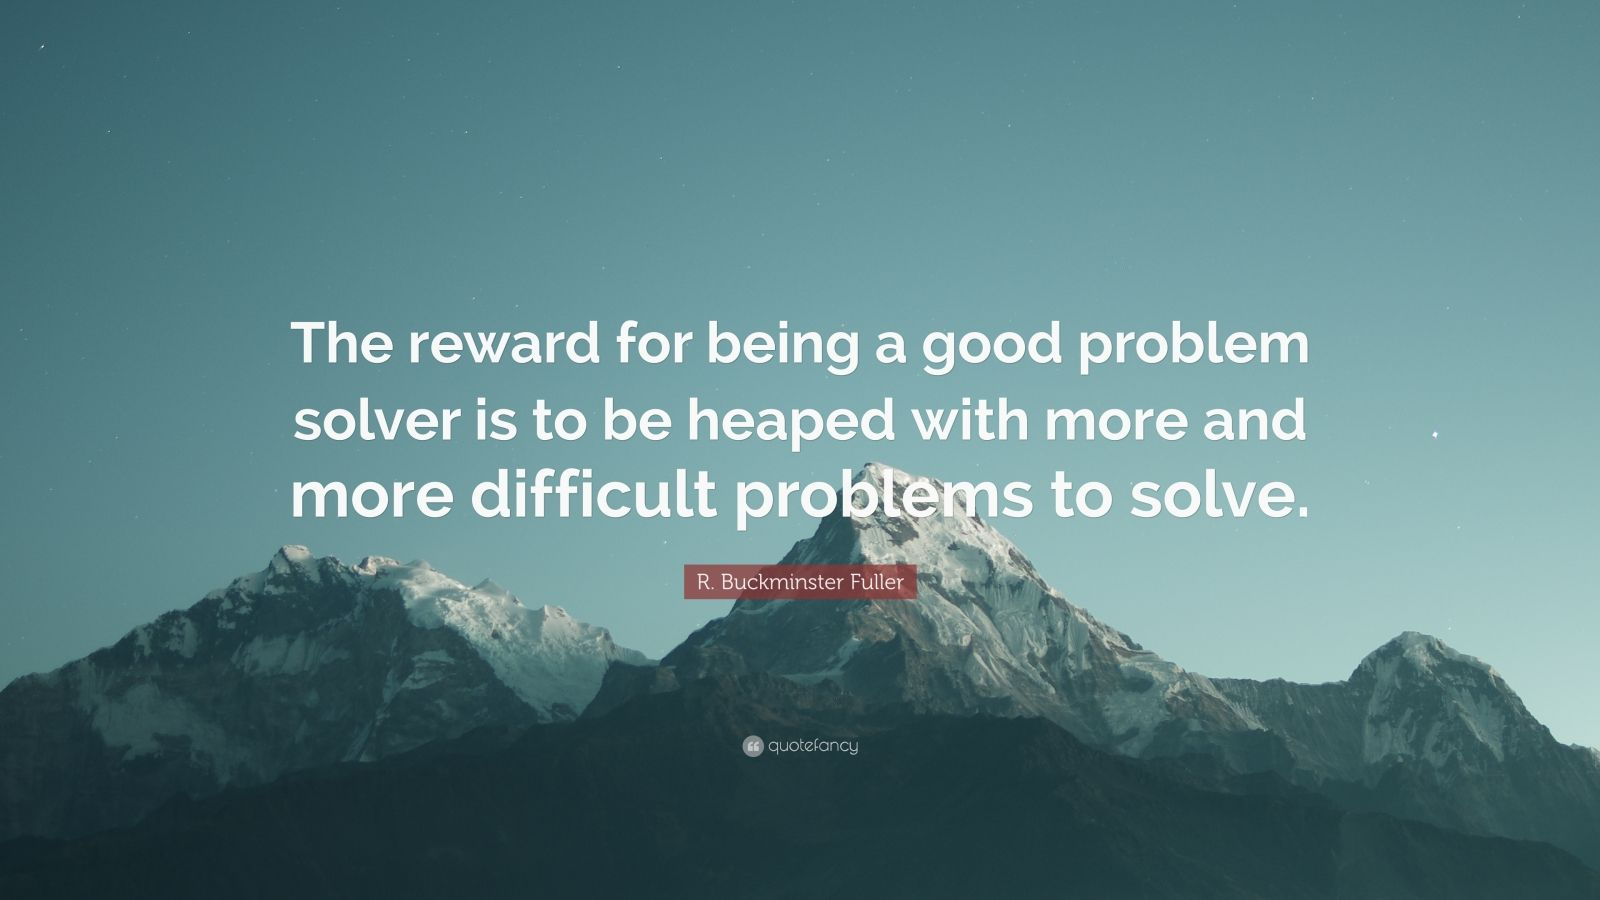 """R. Buckminster Fuller Quote: """"The reward for being a good problem solver is to be heaped with more and more difficult problems to solve."""""""